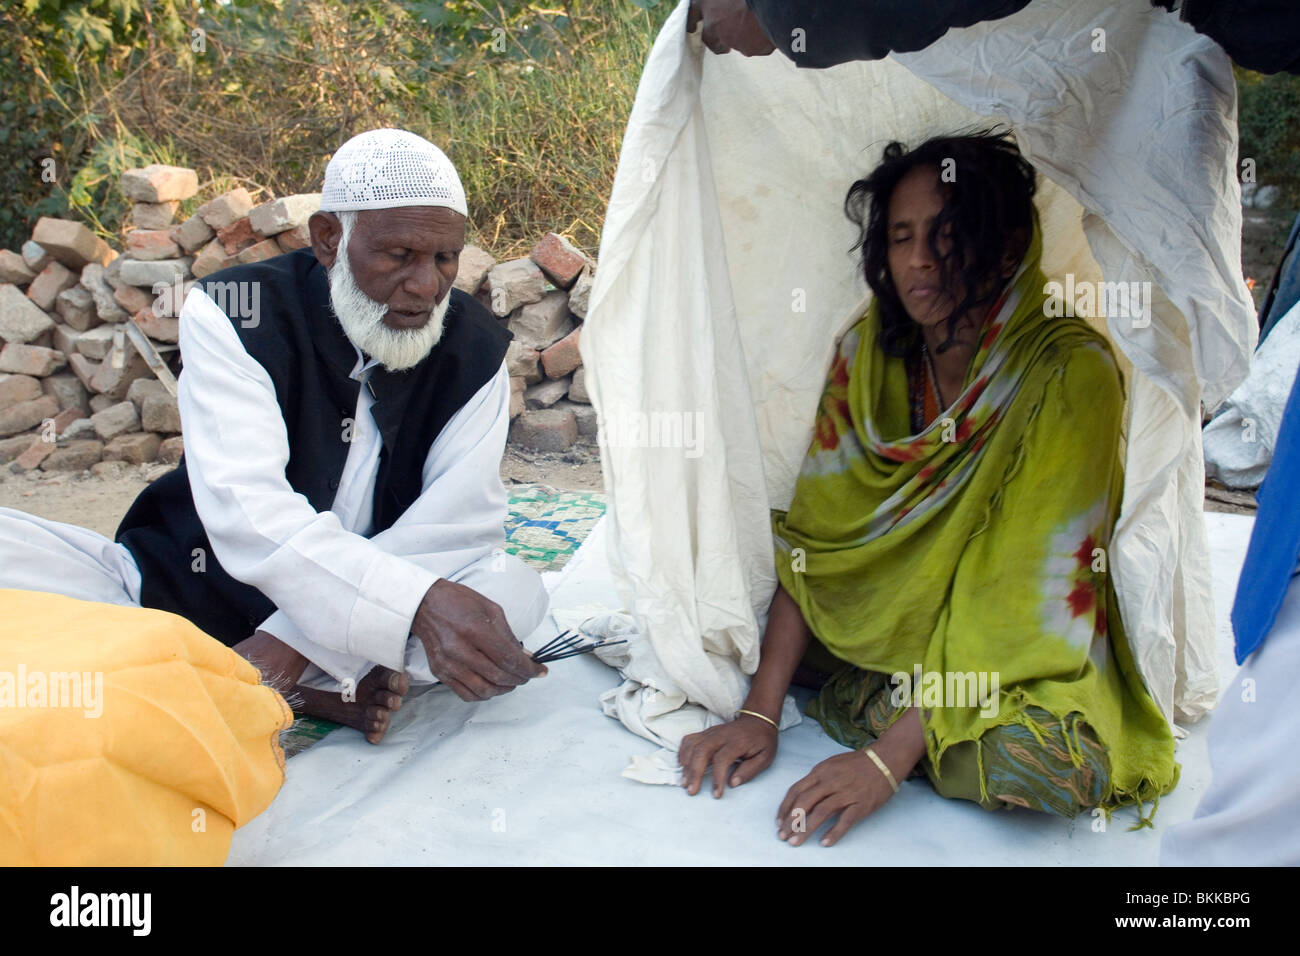 A Sufi holy man or Pir, exorcises a spirit from a woman at a dargah or shrine in South Delhi, India - Stock Image